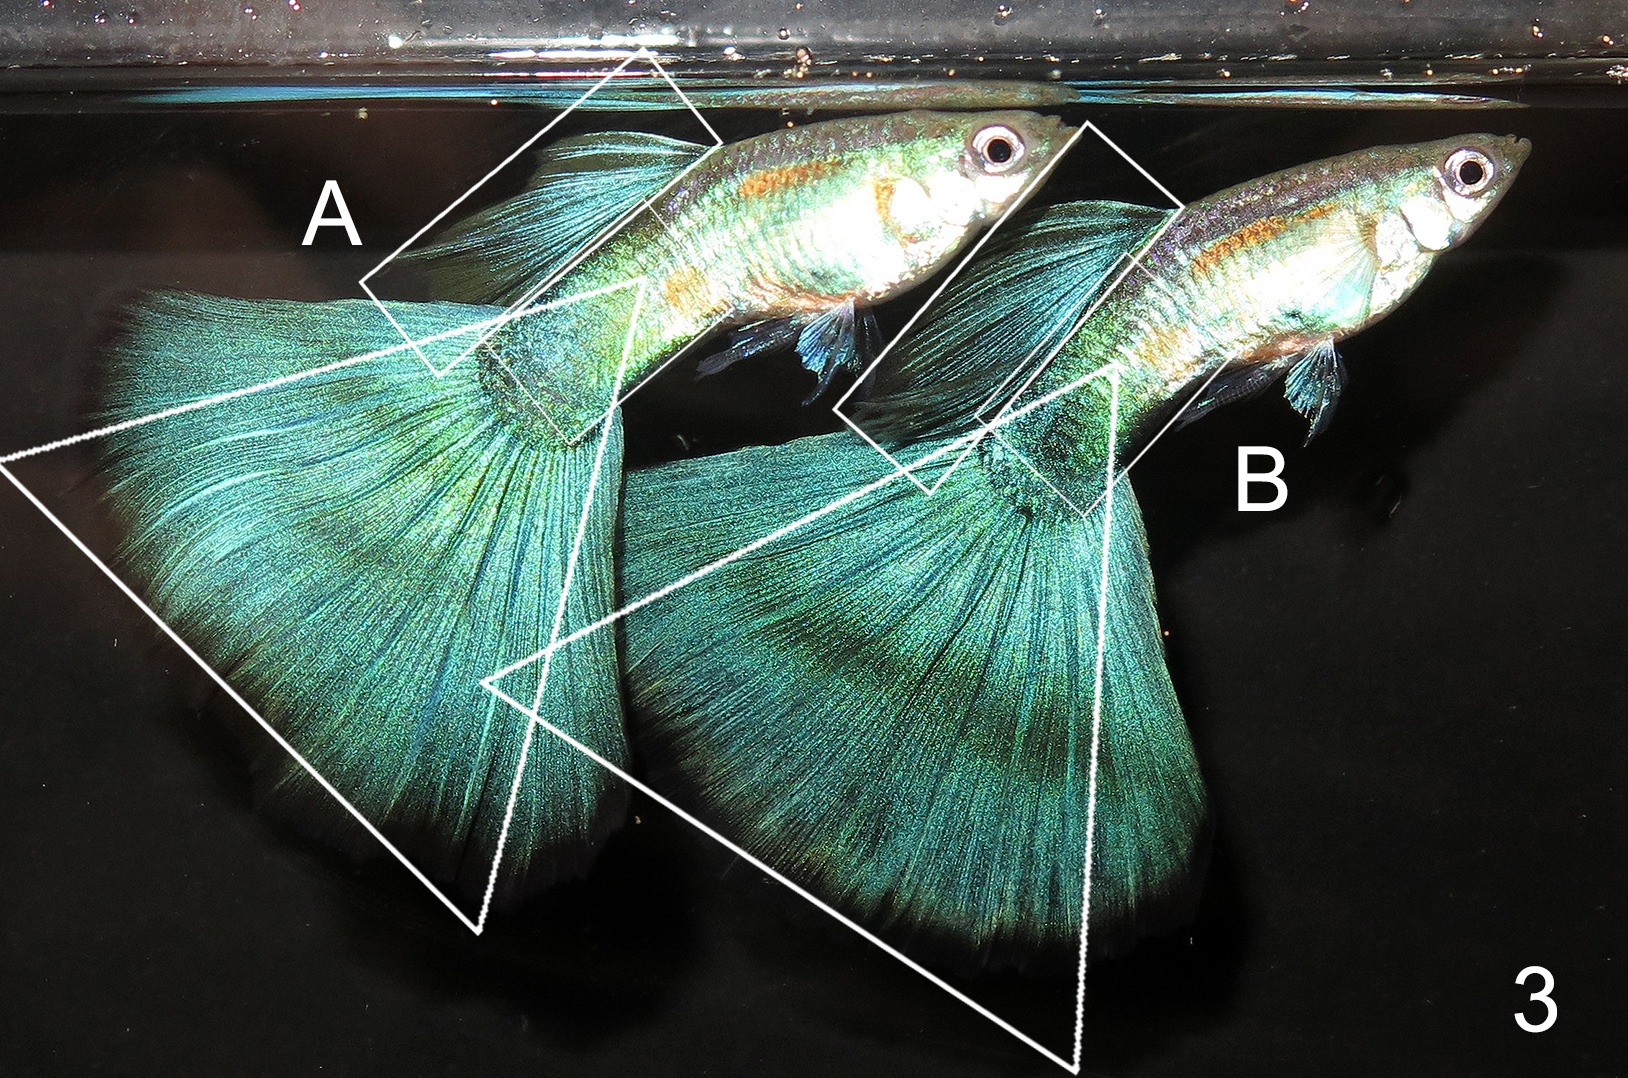 Green Guppy tank entry shape judging